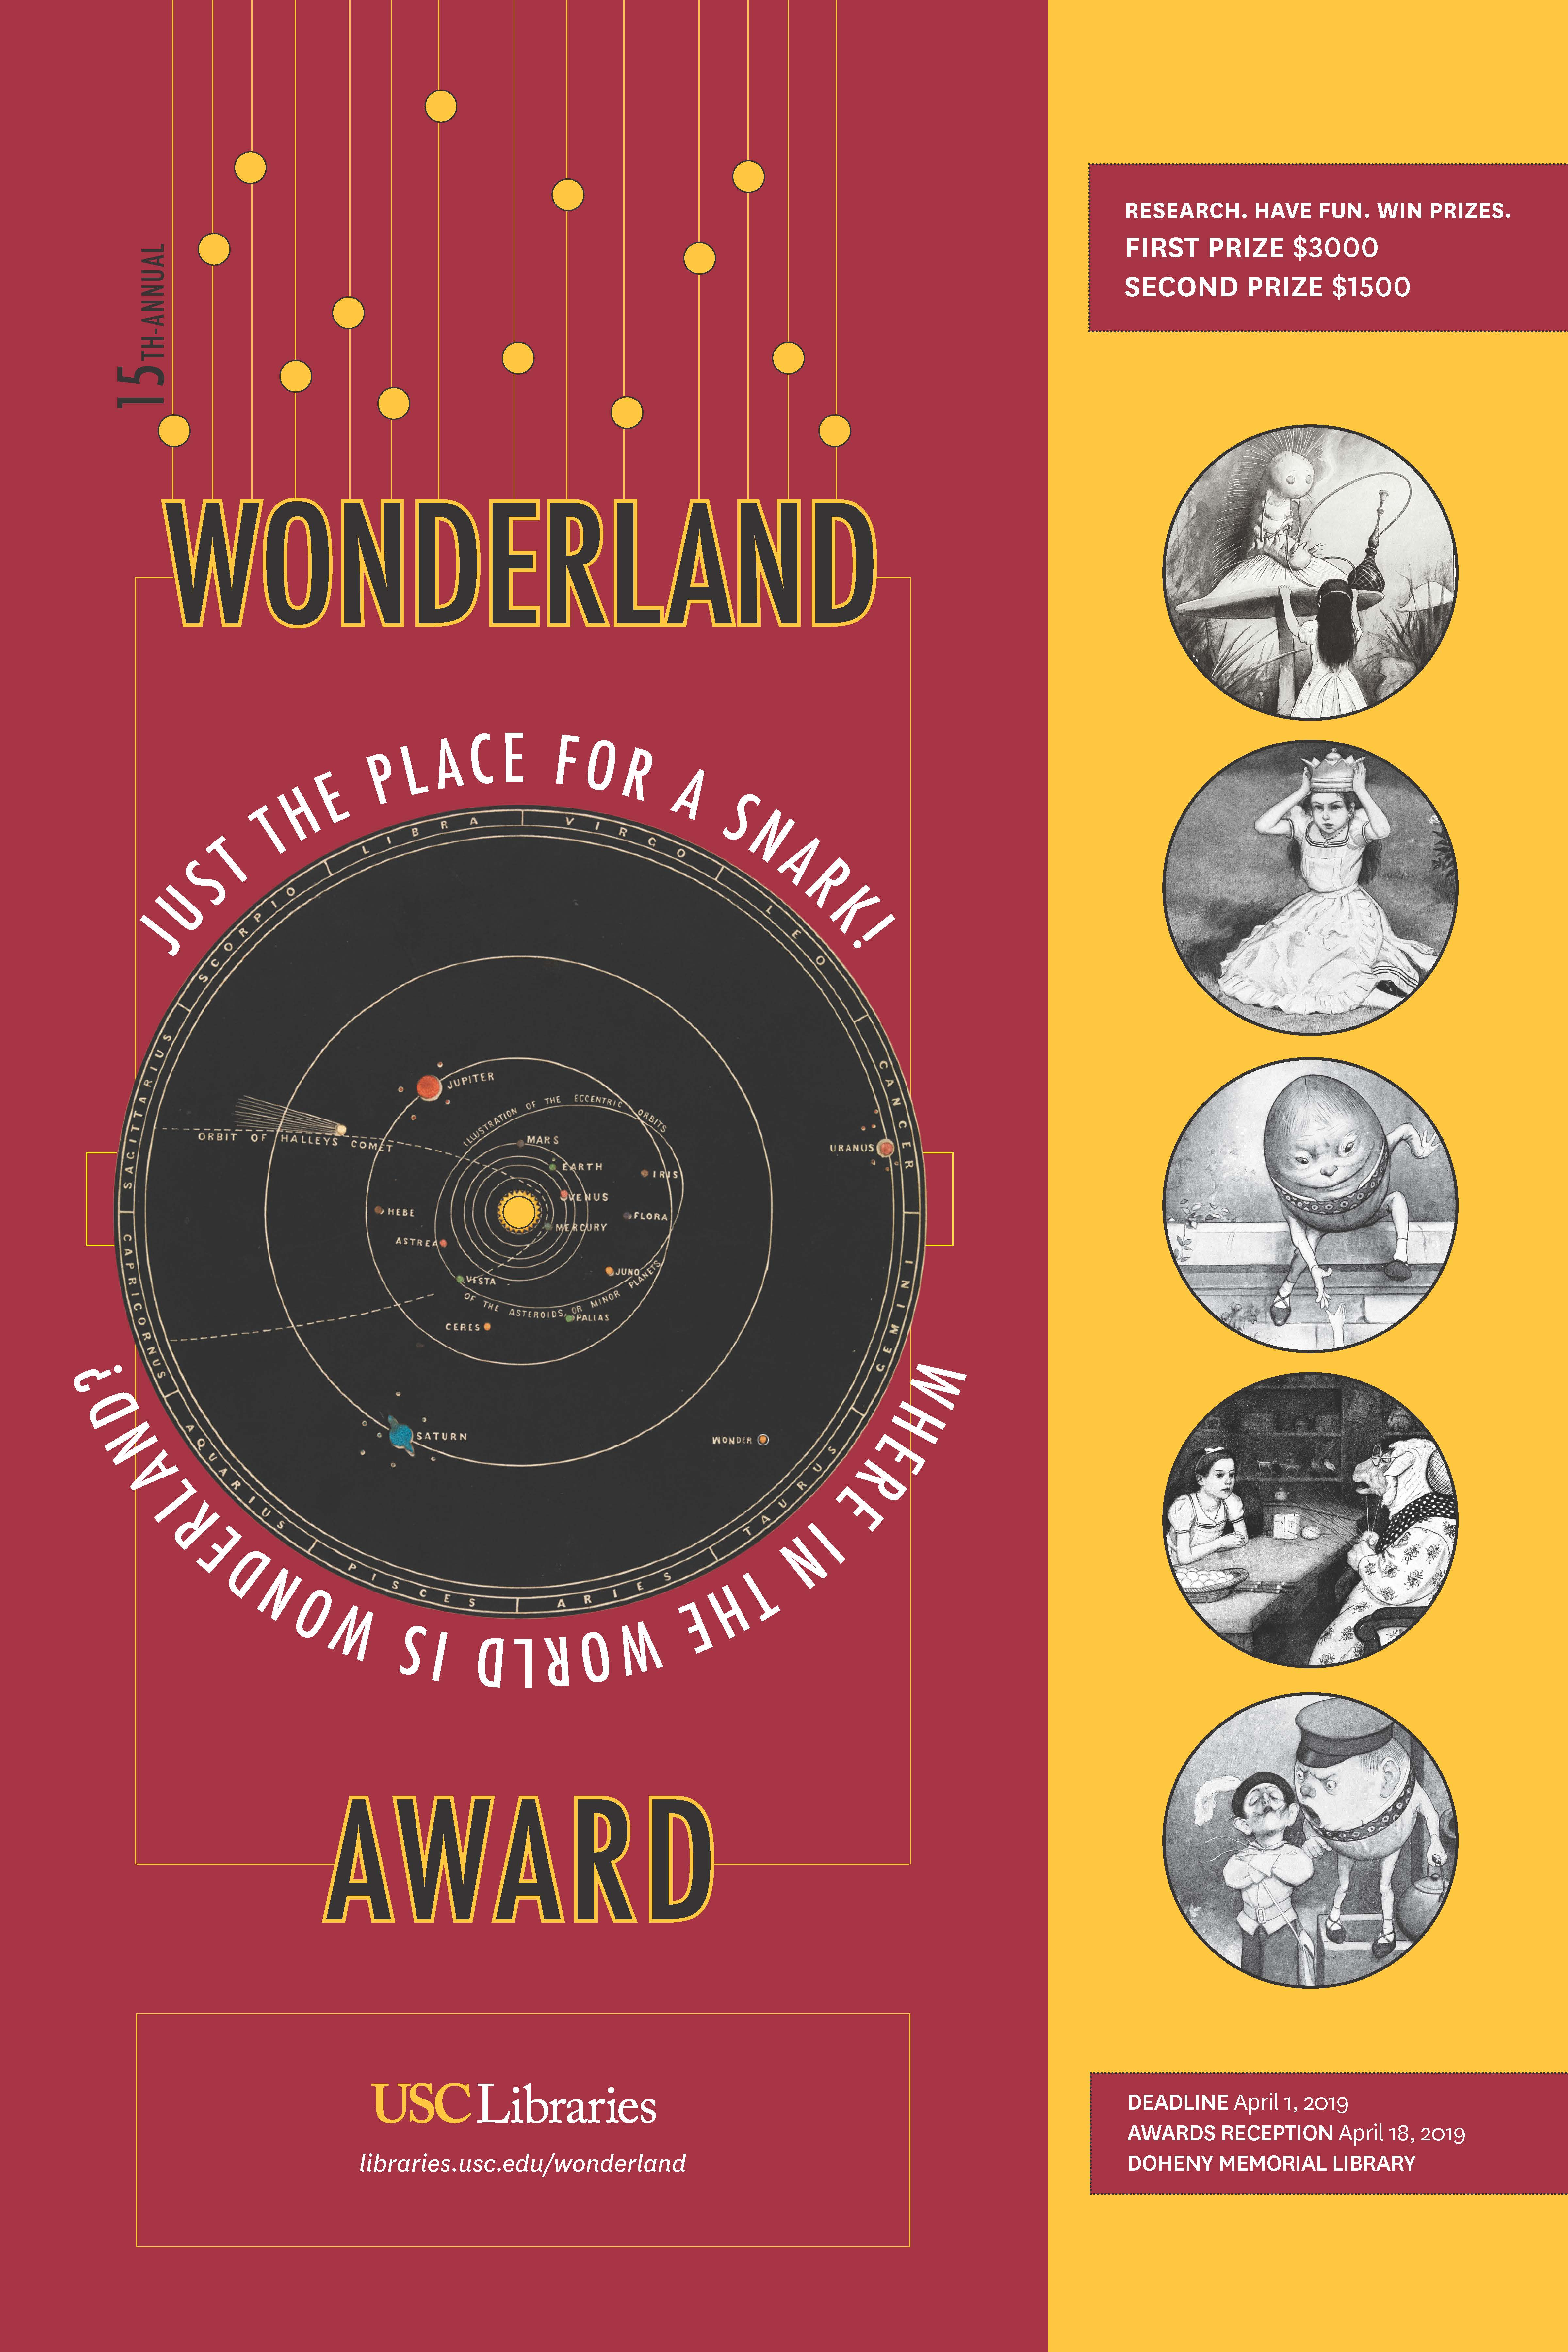 USC Libraries 15th-Annual Wonderland Award